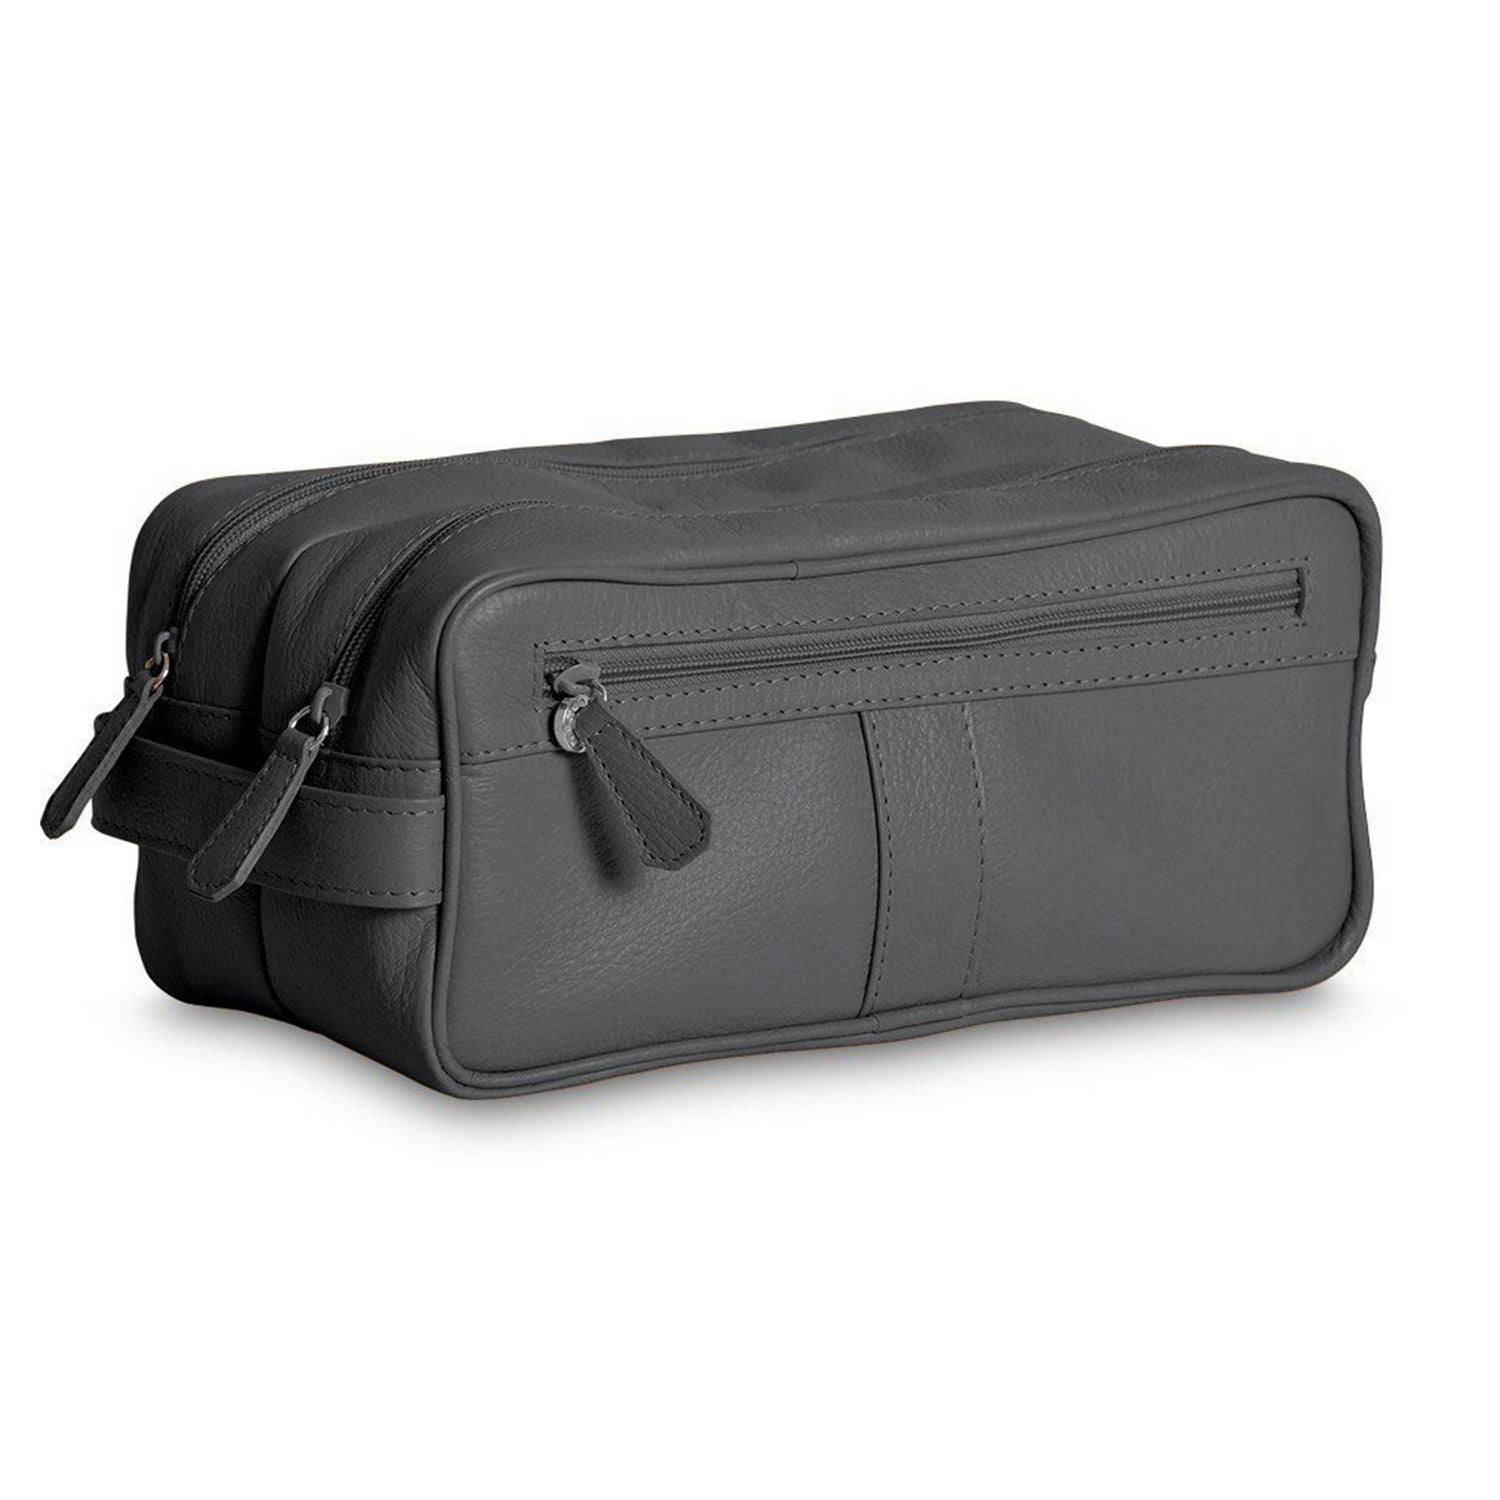 Men's Travel Case